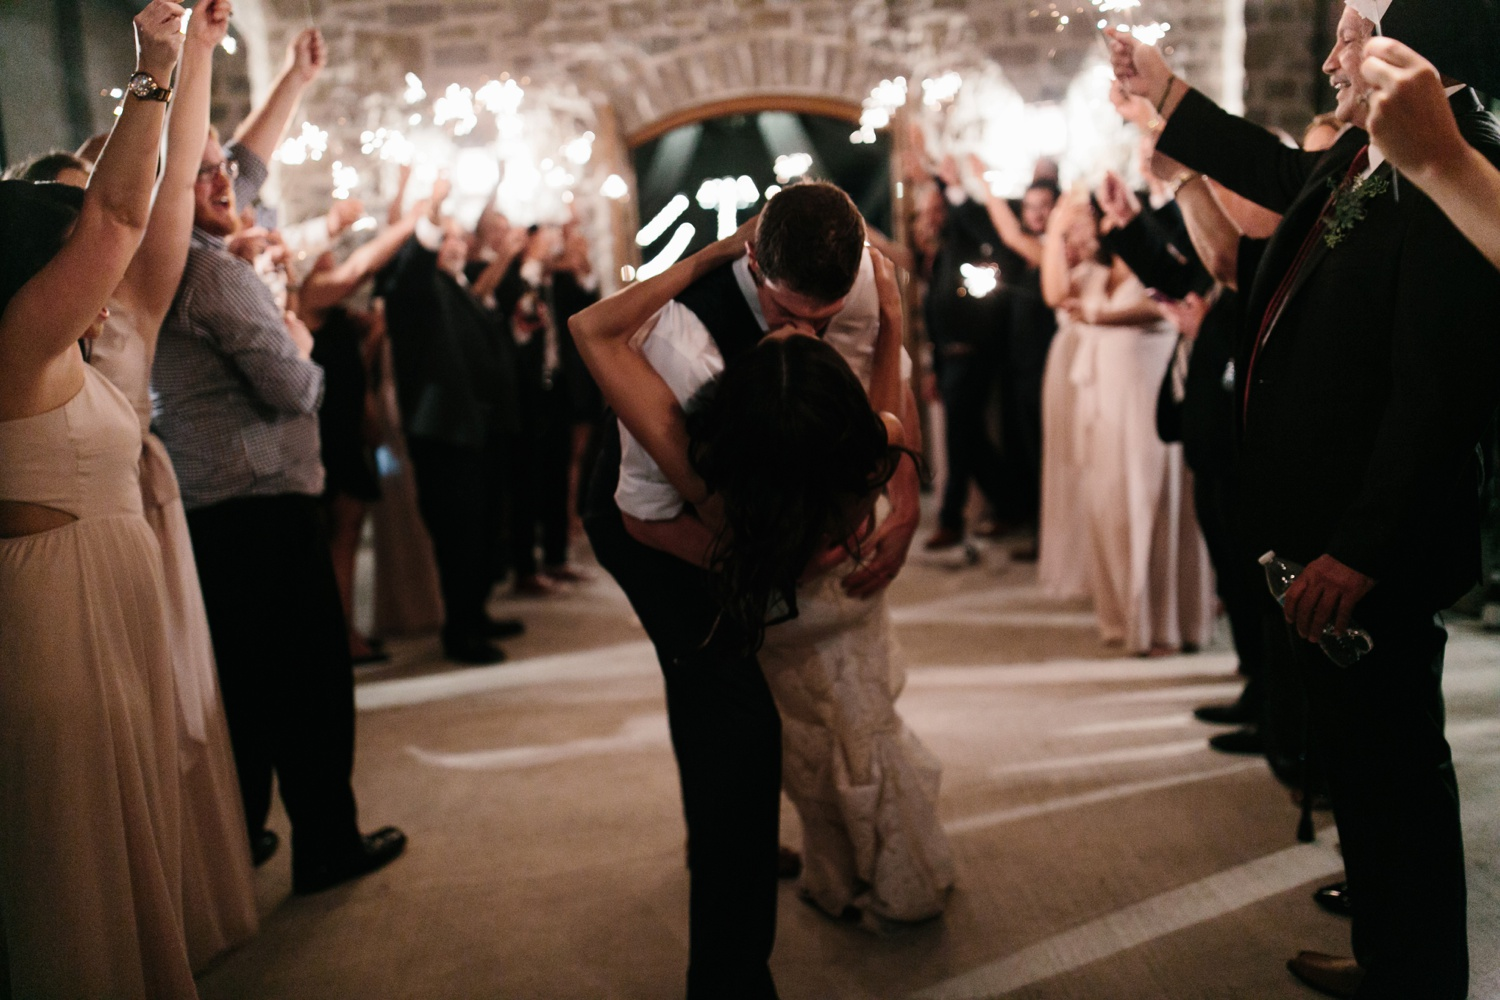 Erica + Henry | a bohemian inspired wedding at Chandlers Gardens in Salina, TX by North Texas Wedding Photographer Rachel Meagan Photography 169